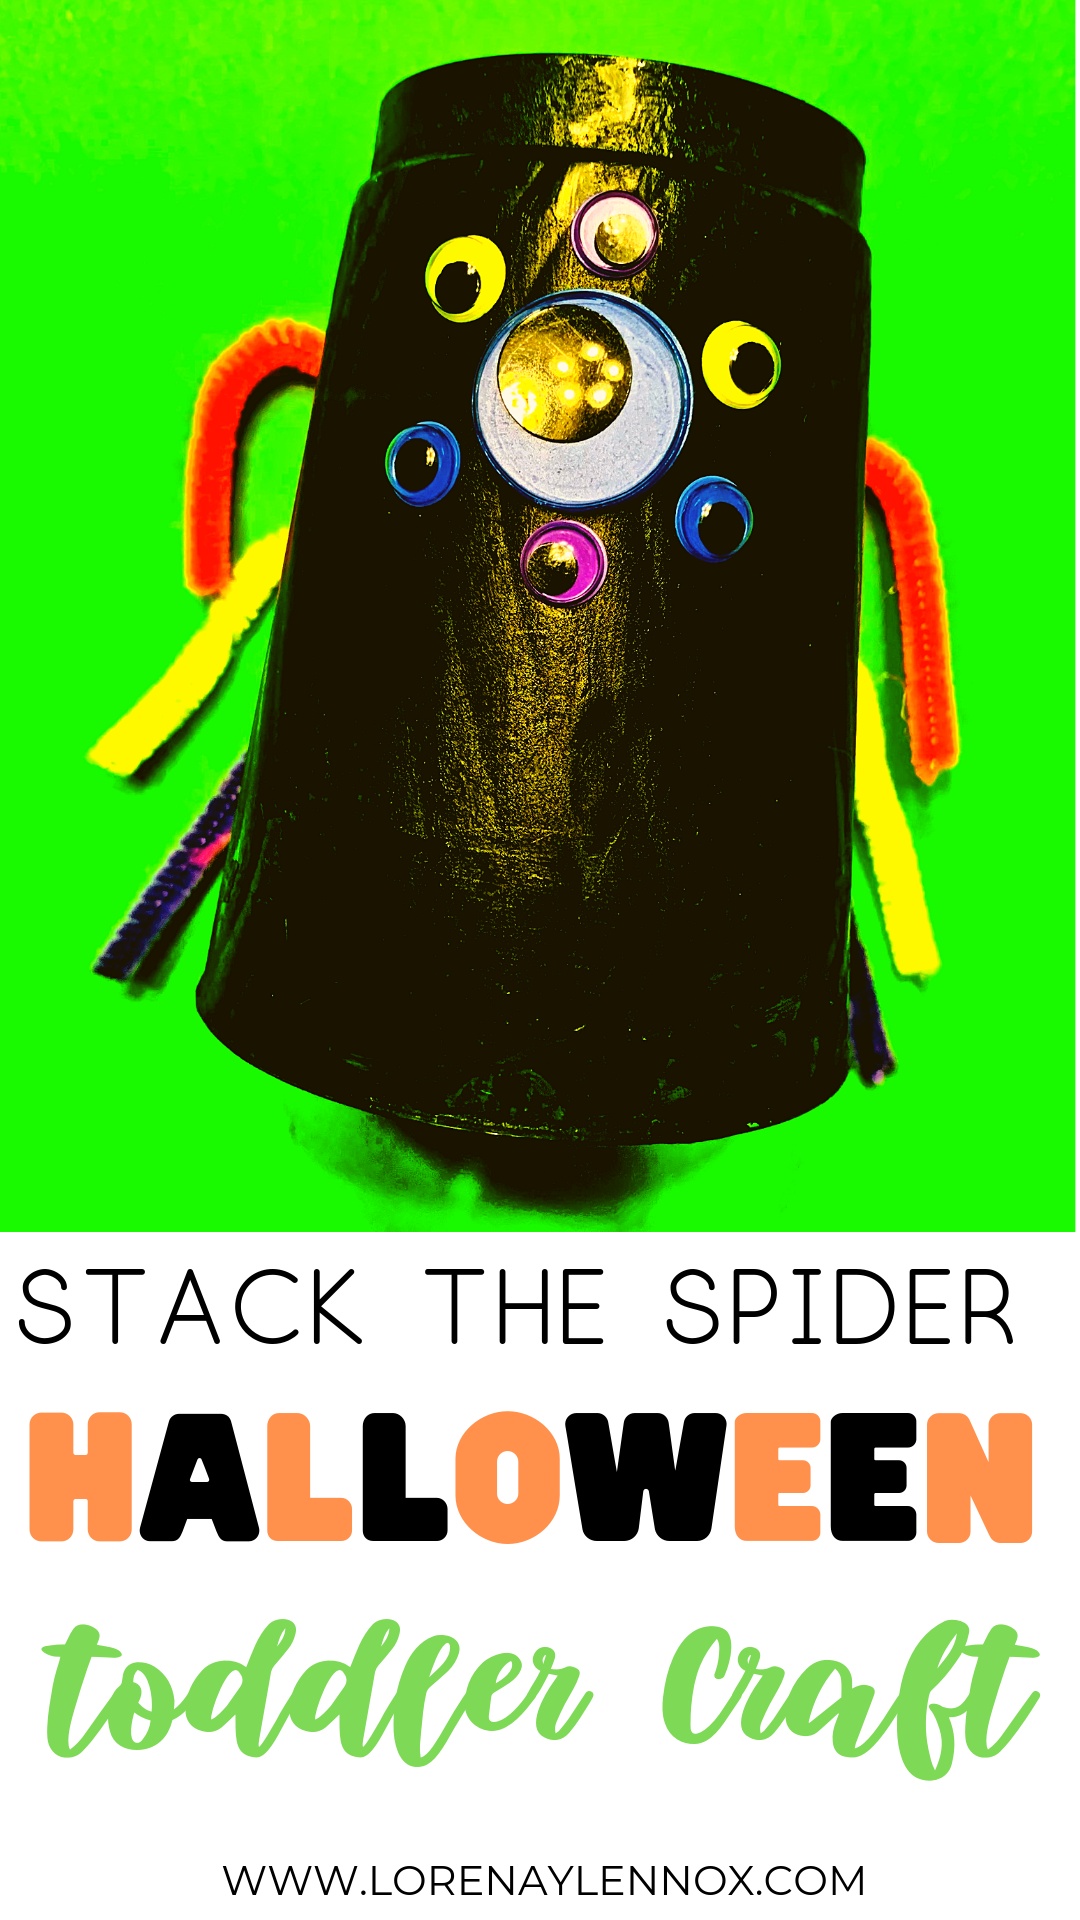 Stack the Spider Halloween Toddler Craft